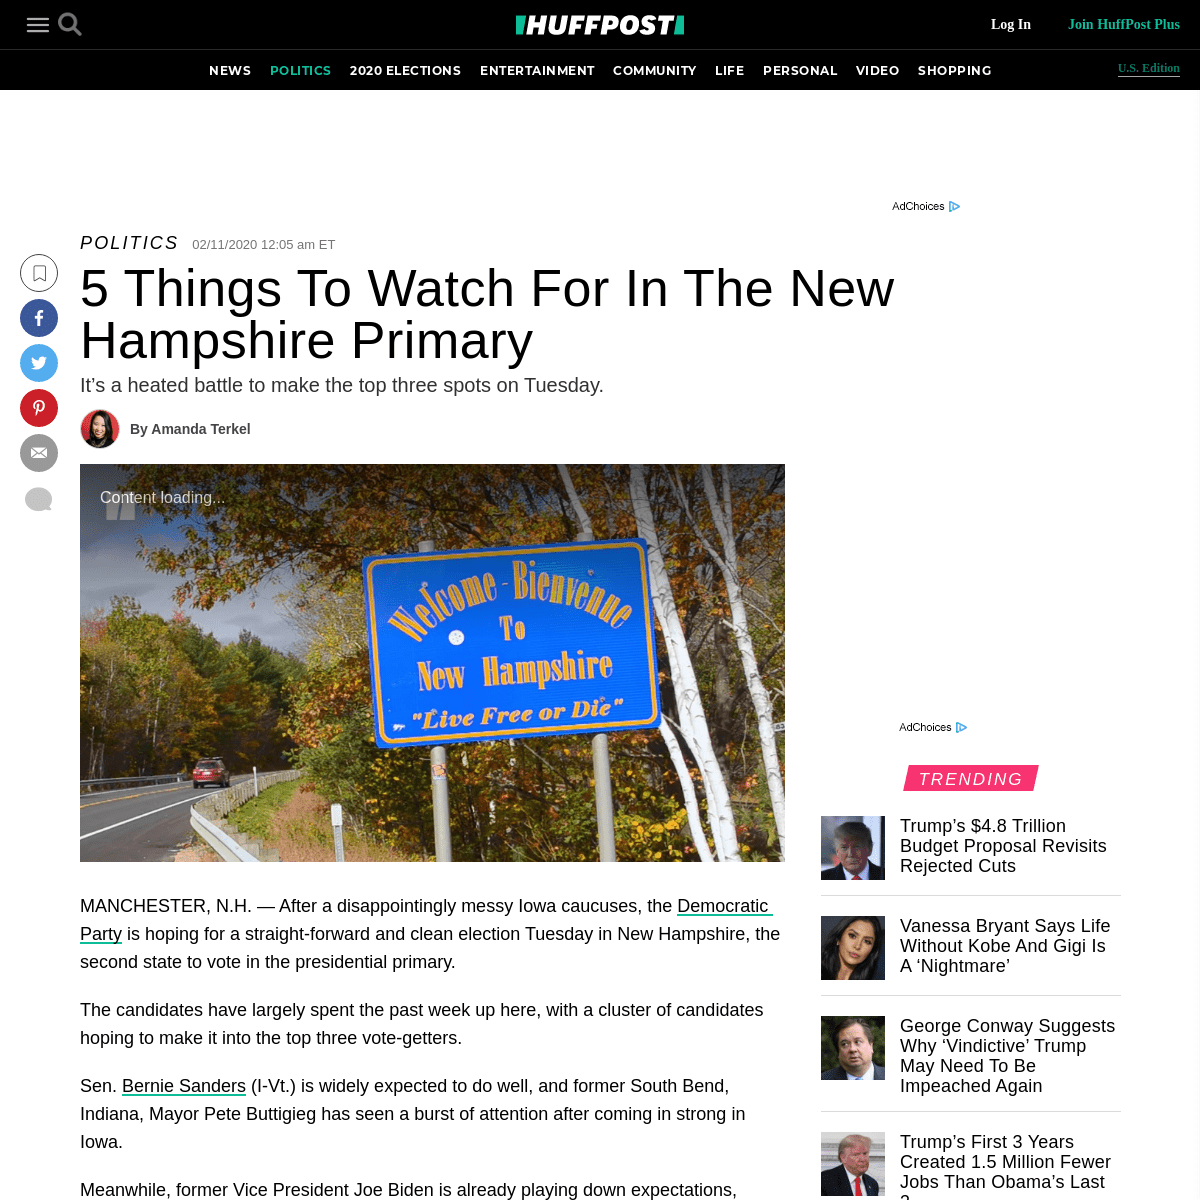 ArchiveBay.com - www.huffpost.com/entry/new-hampshire-primary_n_5e41c957c5b6bb0ffc16ea49 - 5 Things To Watch For In The New Hampshire Primary - HuffPost